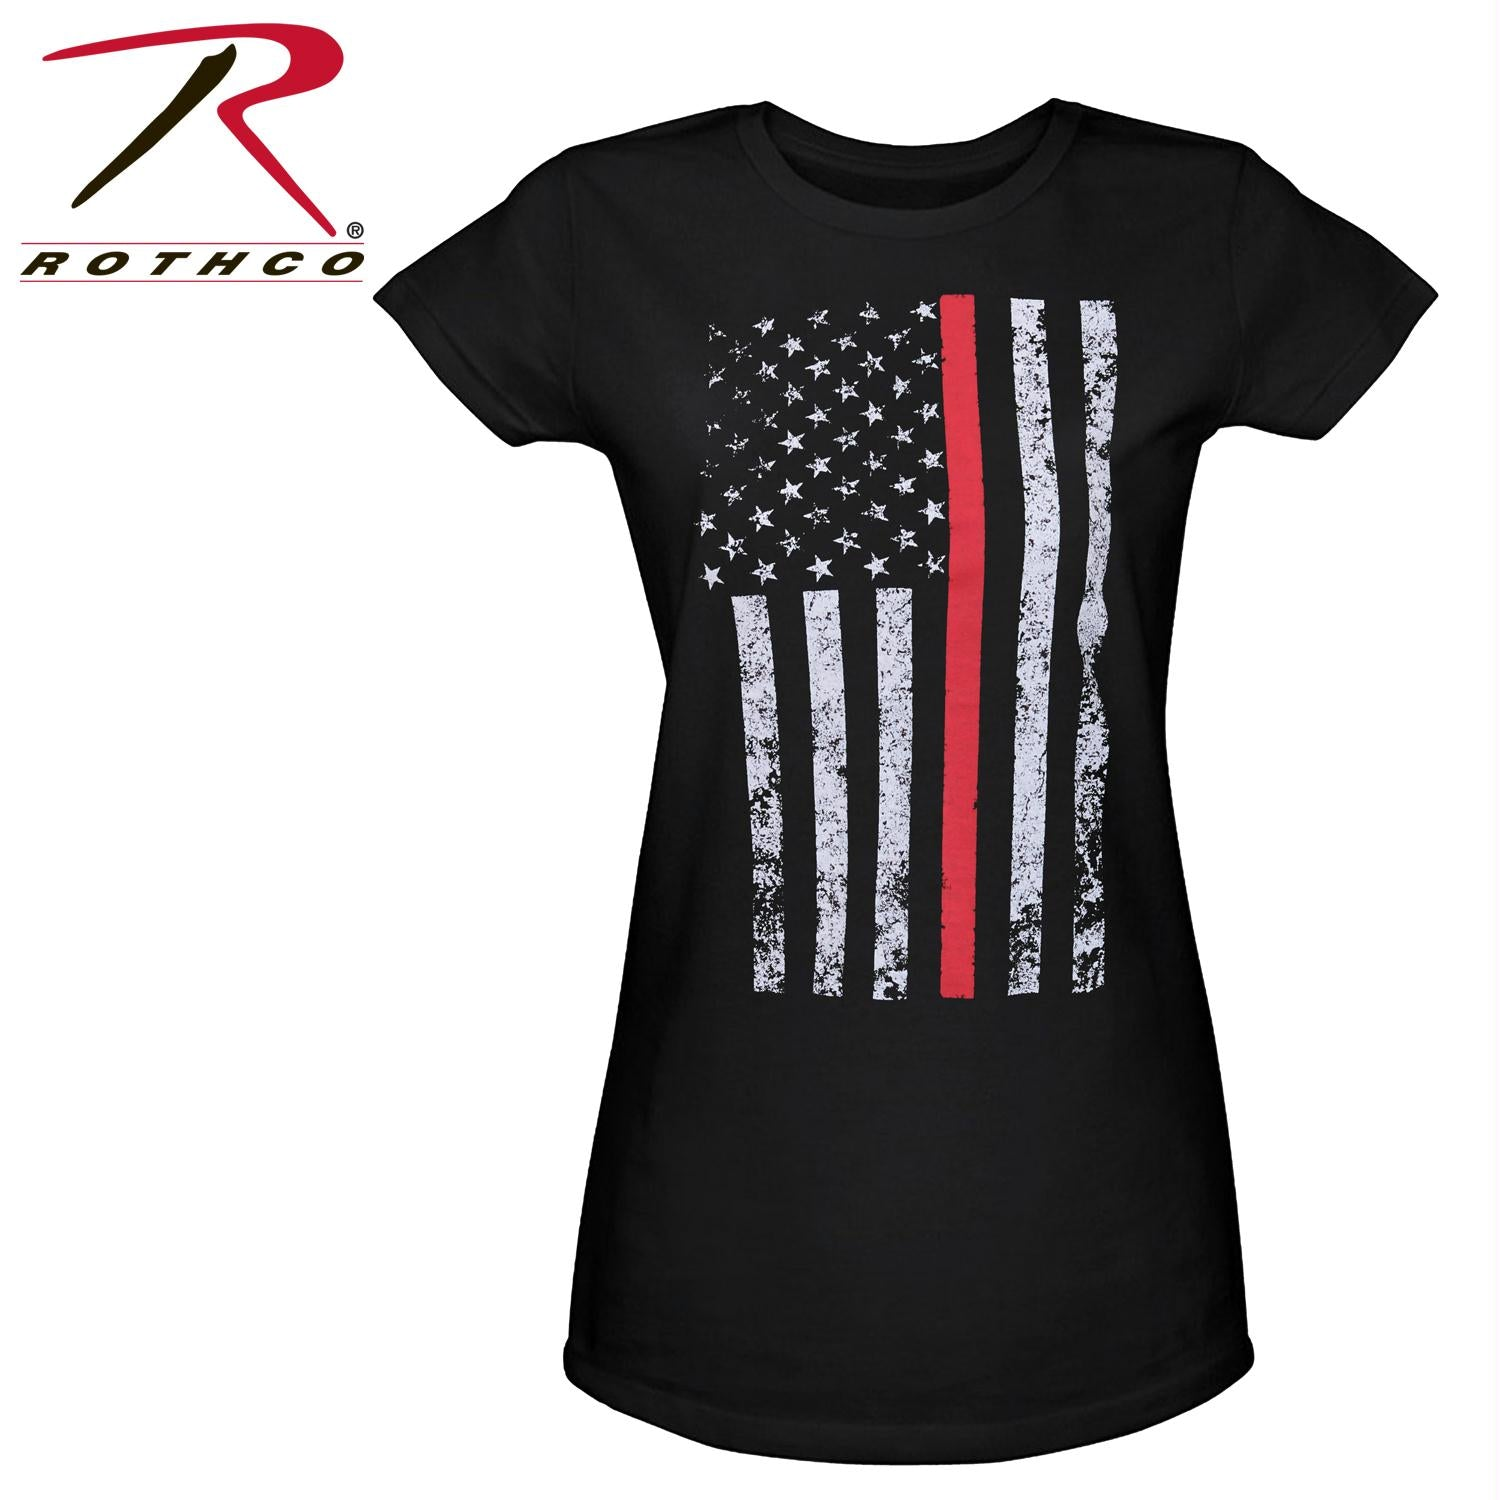 Rothco Womens Thin Red Line Longer T-Shirt